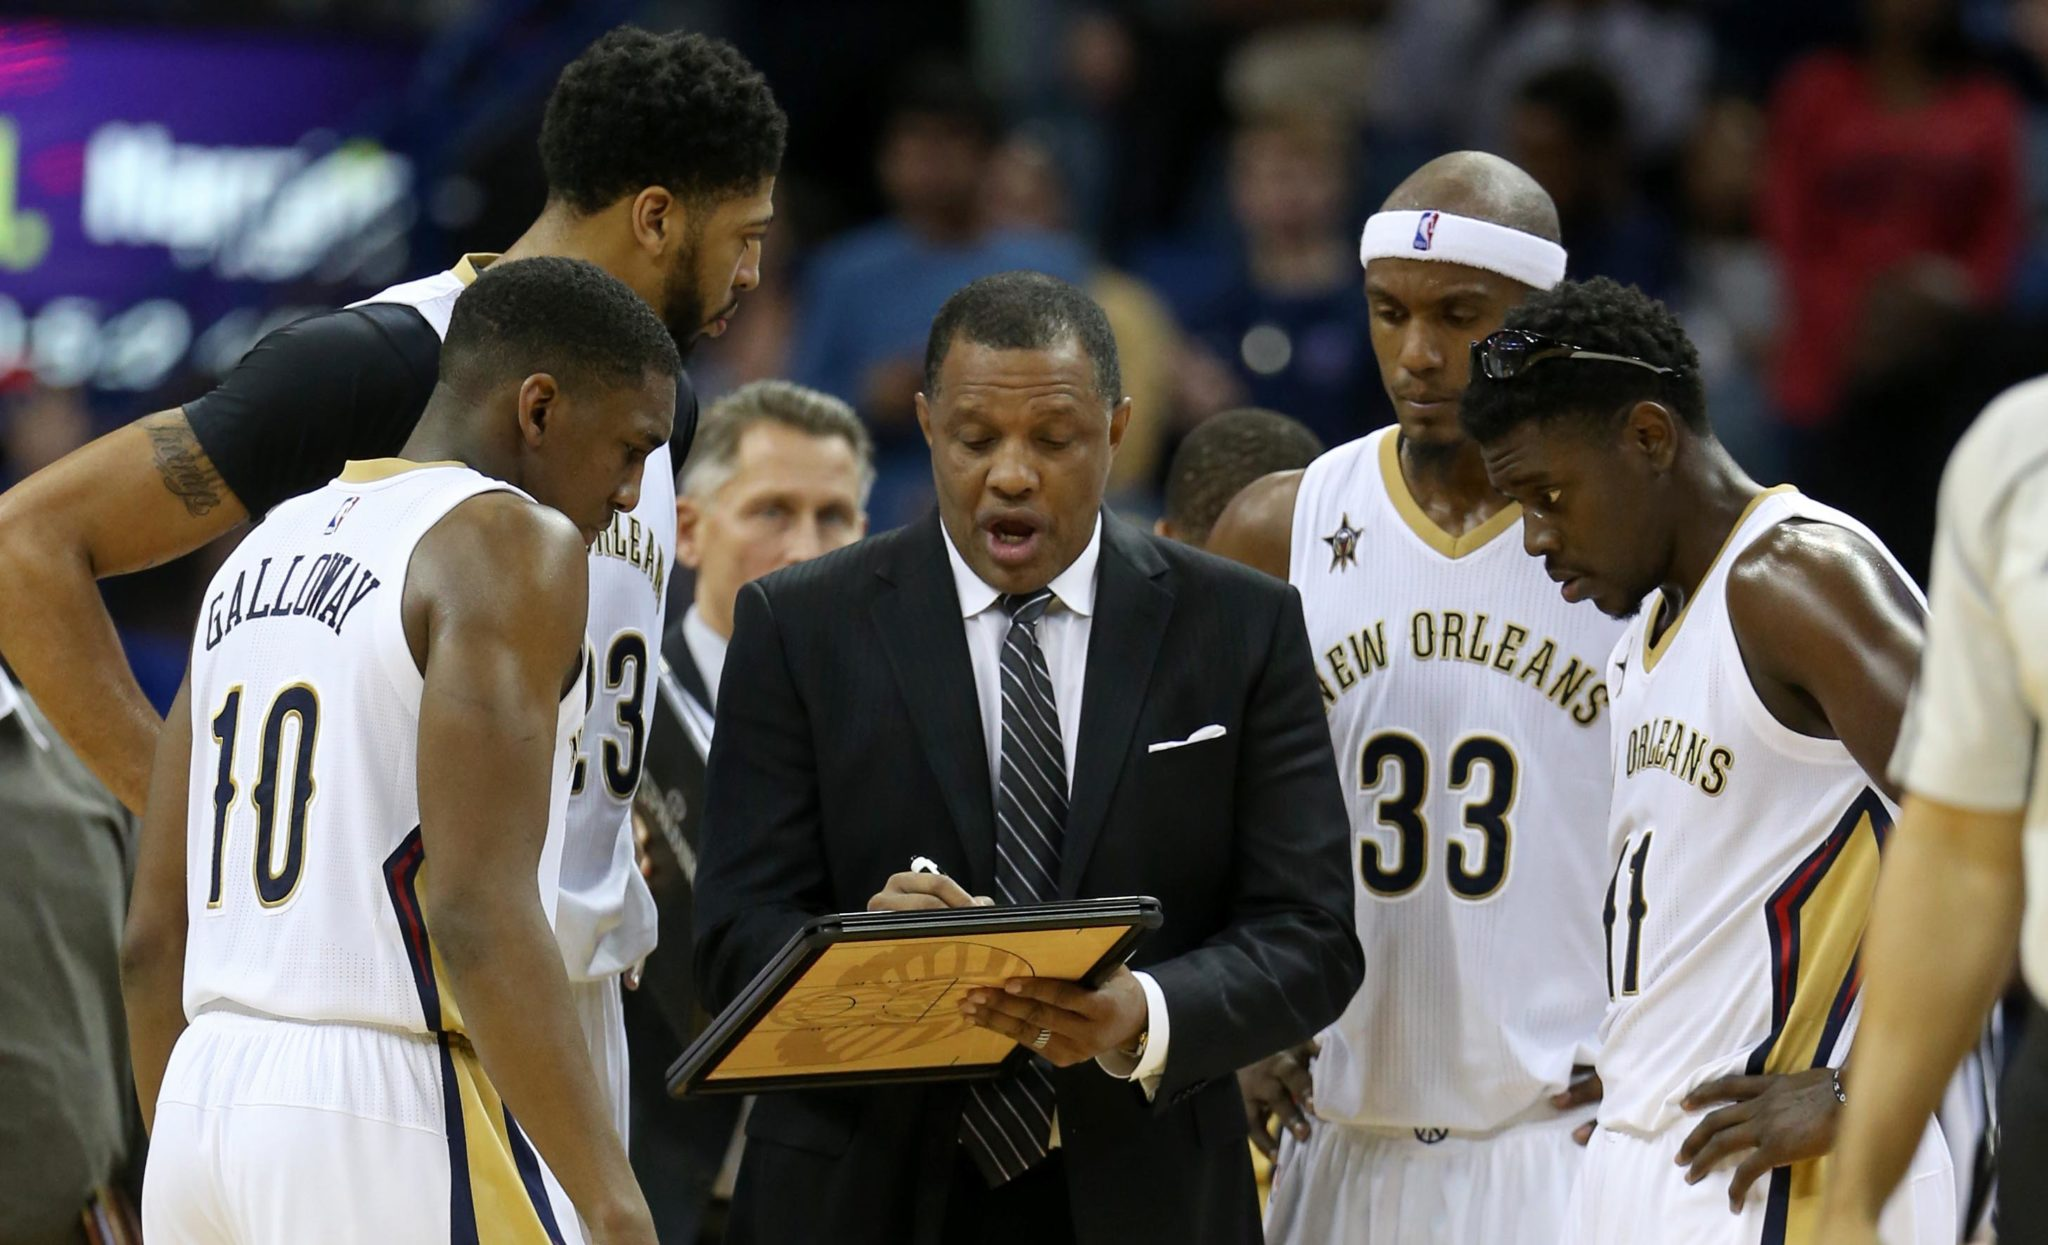 Nba Charlotte Hornets At New Orleans Pelicans Tbn Media